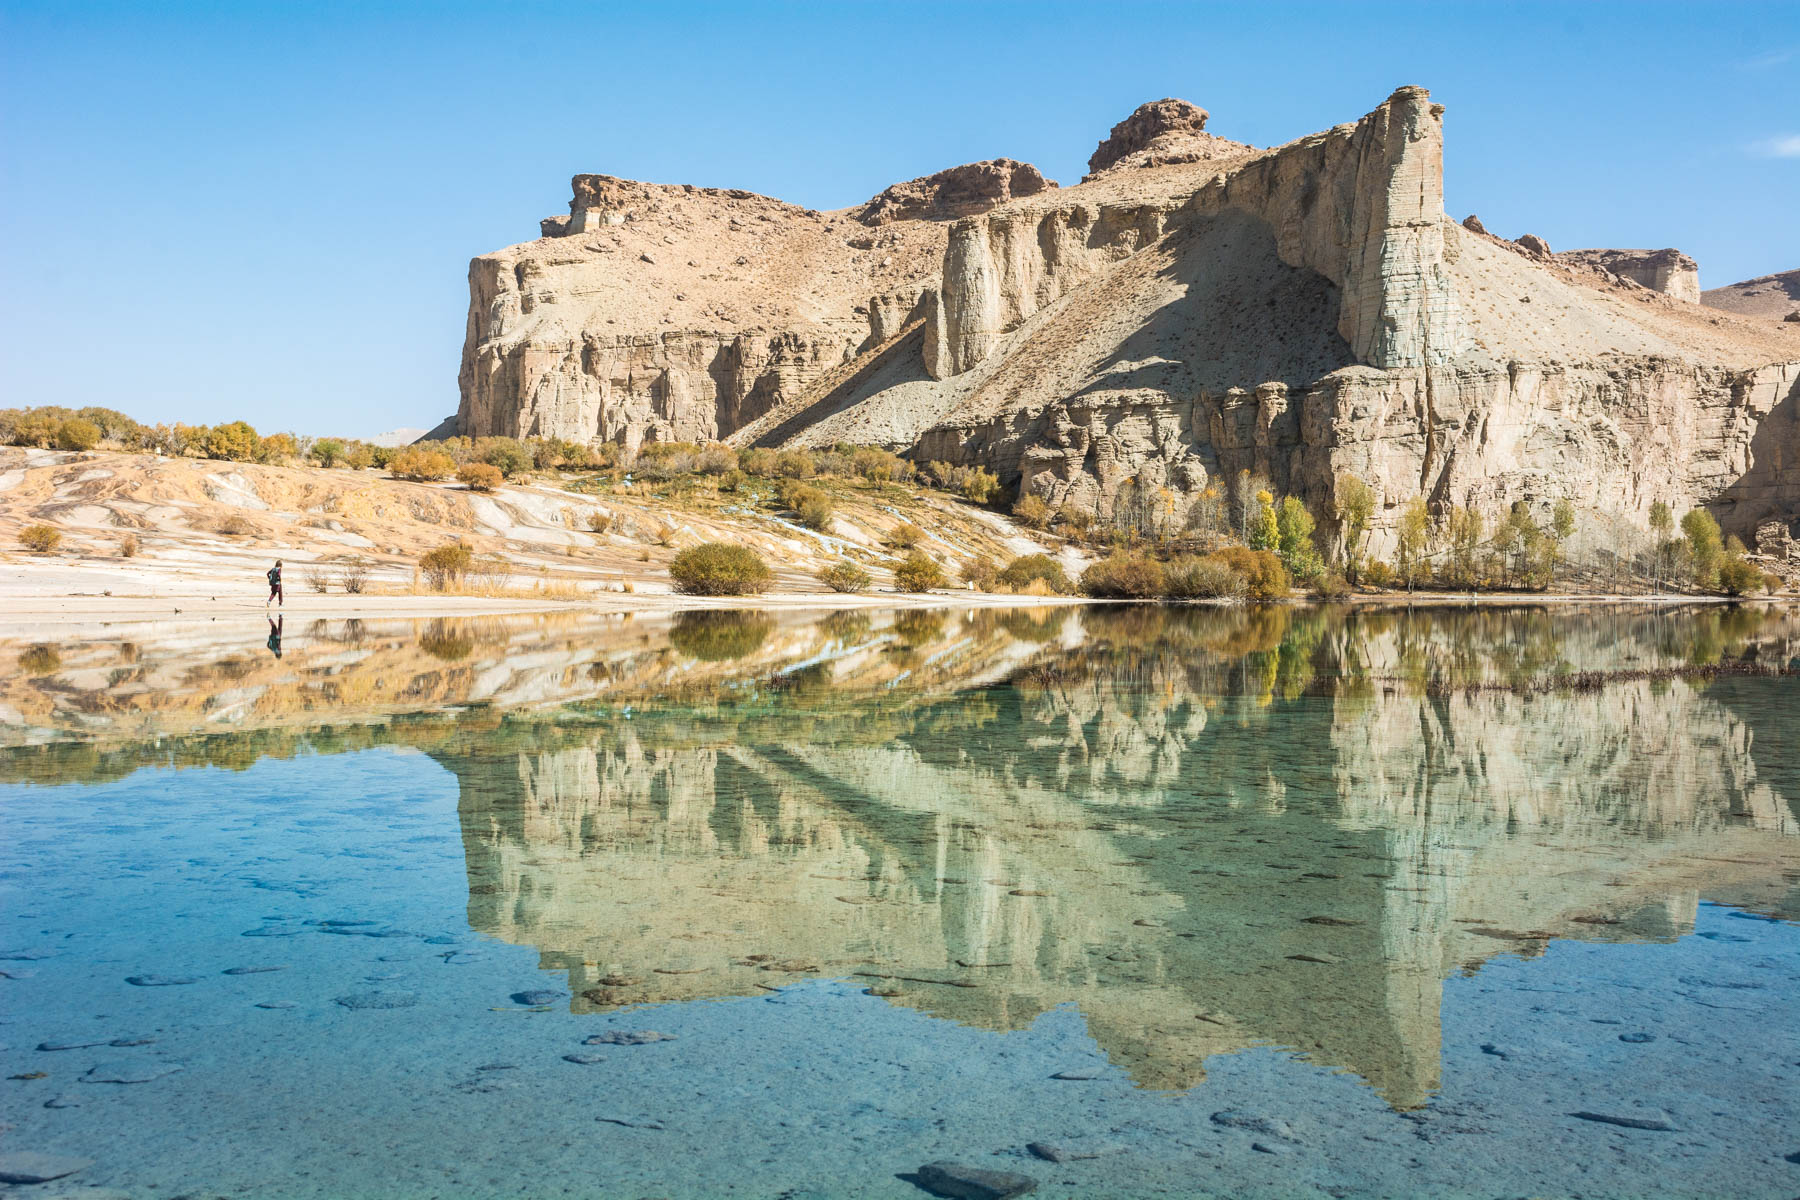 Stunning reflections in a lake at Band-e-Amir, Afghanistan - Lost With Purpose